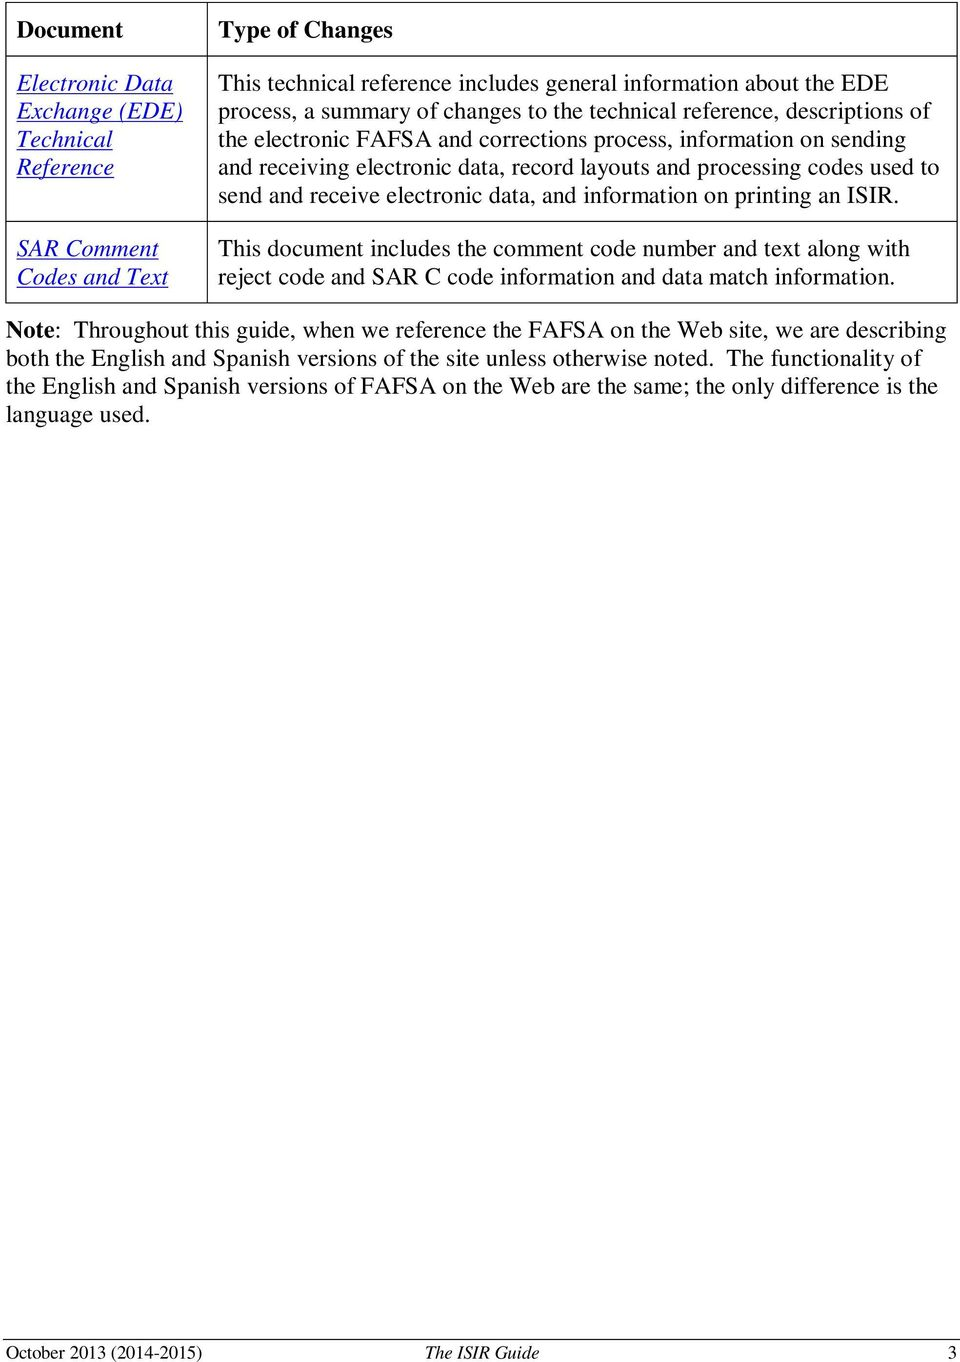 The isir guide us department of education pdf electronic data and information on printing an isir this document includes the comment code ibookread Read Online